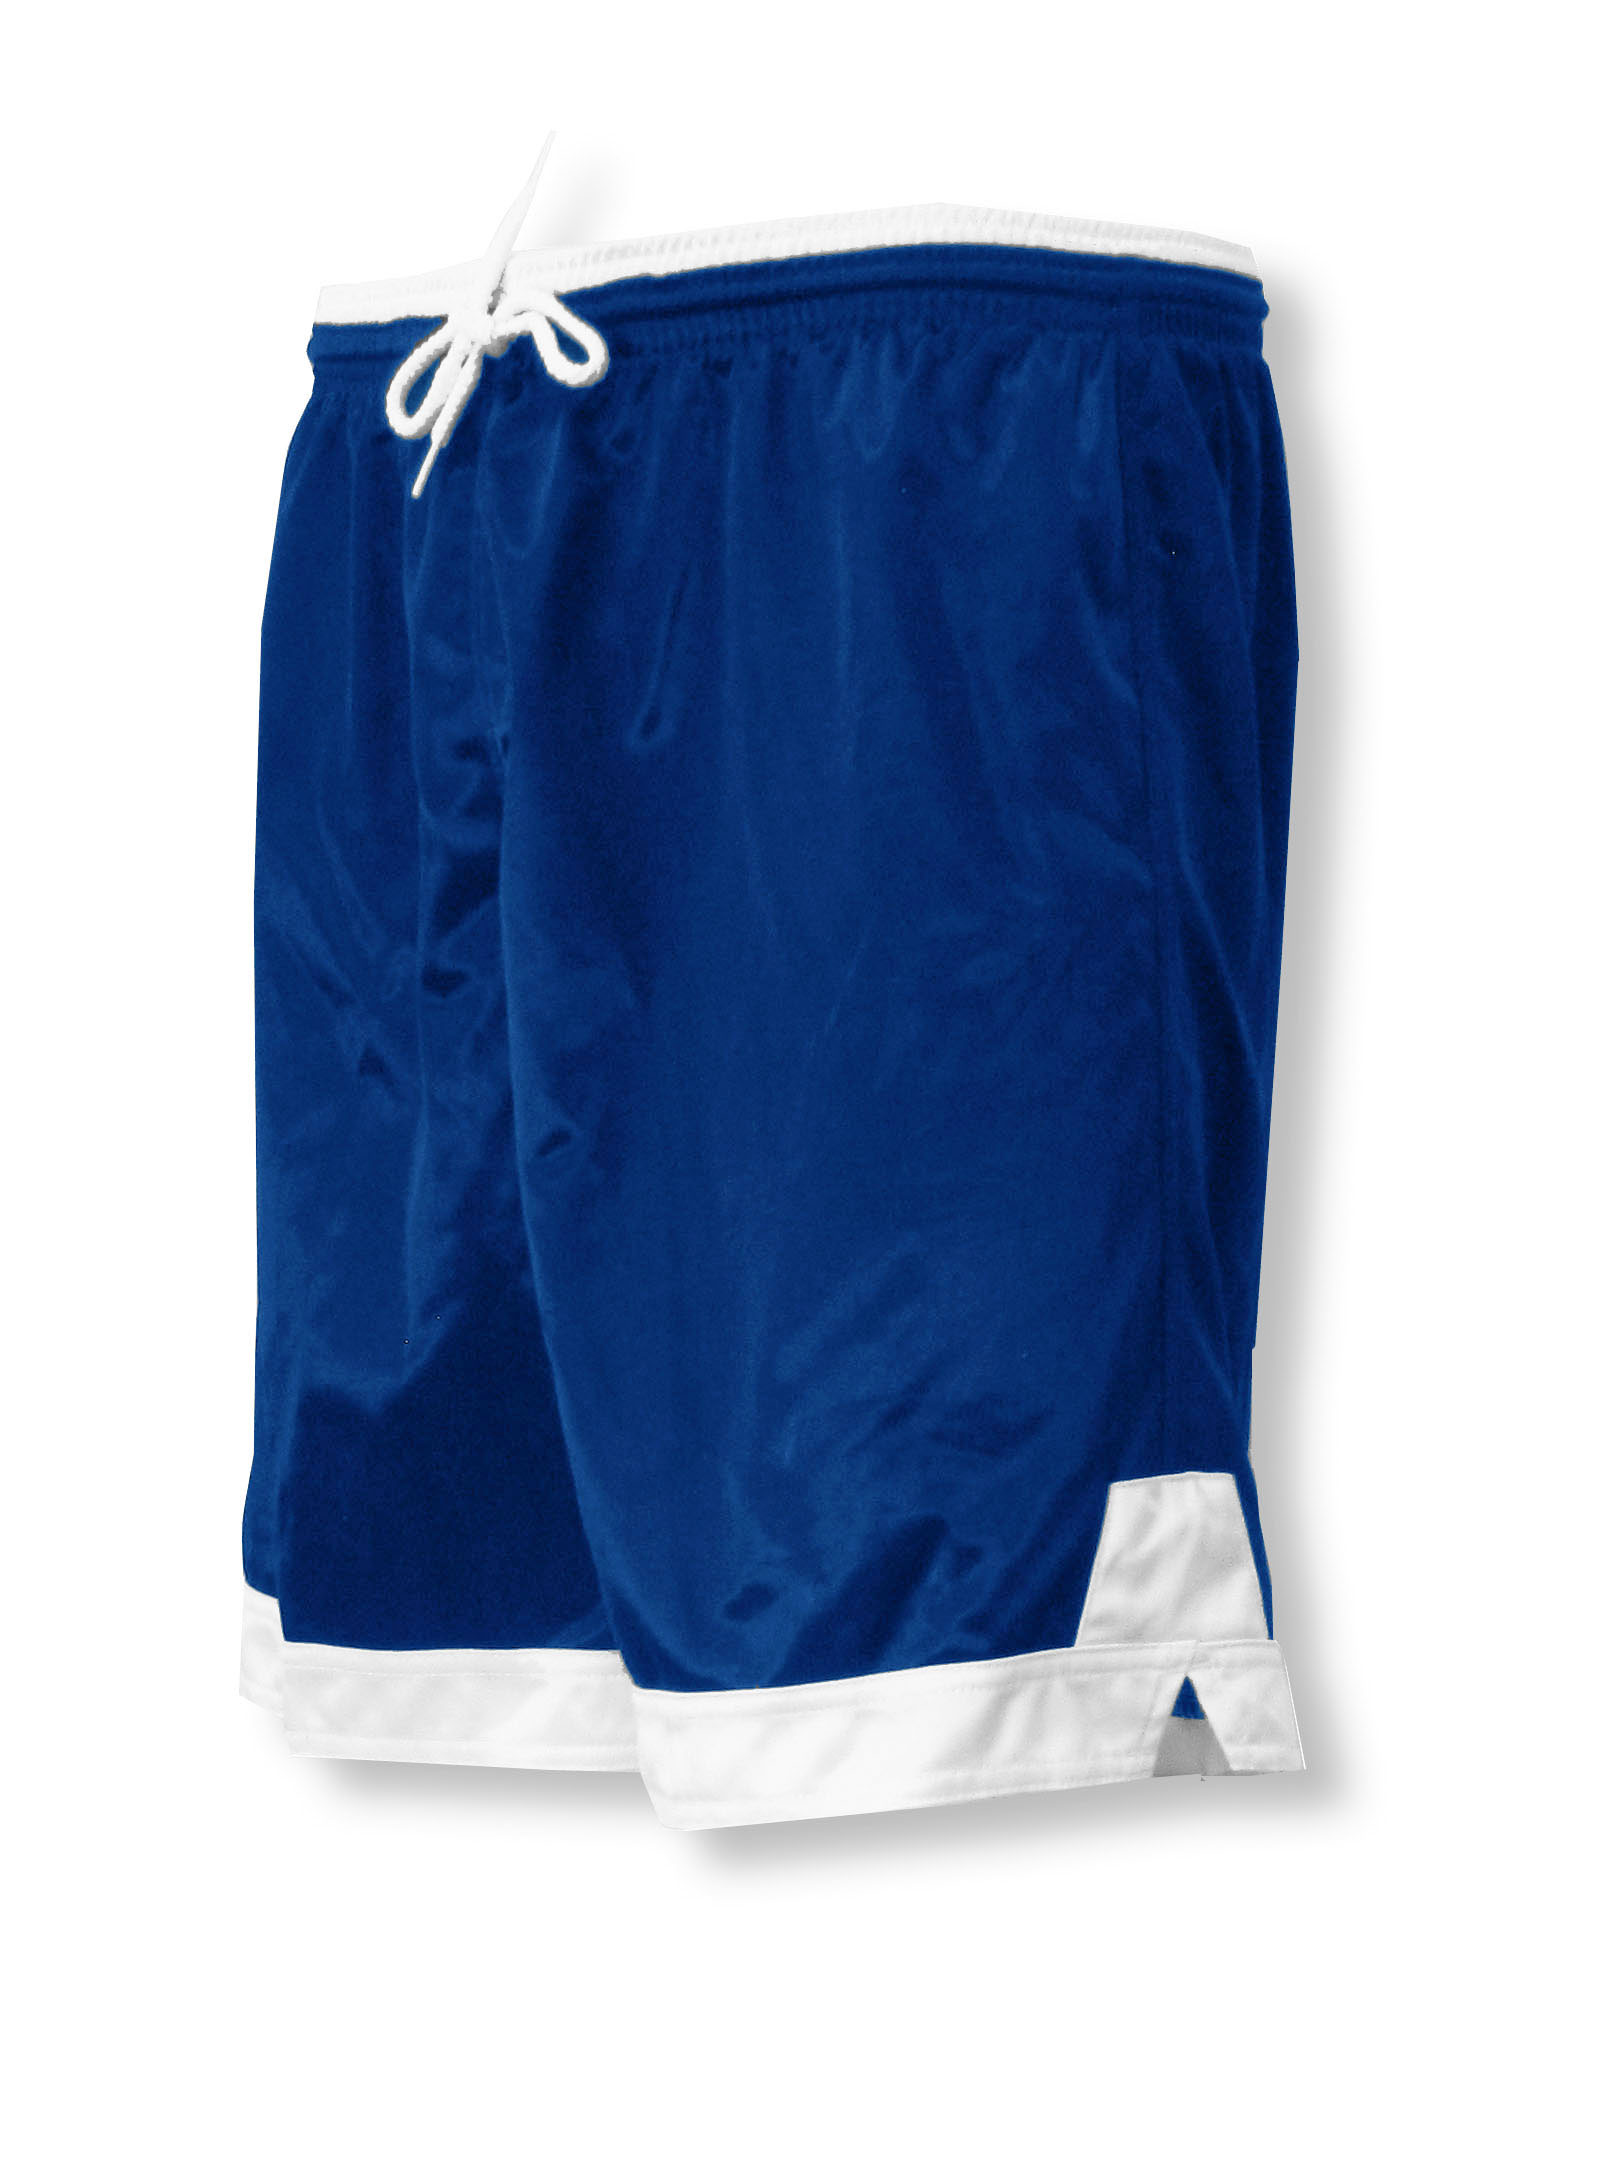 Winchester soccer shorts in navy/white by Code Four Athletics